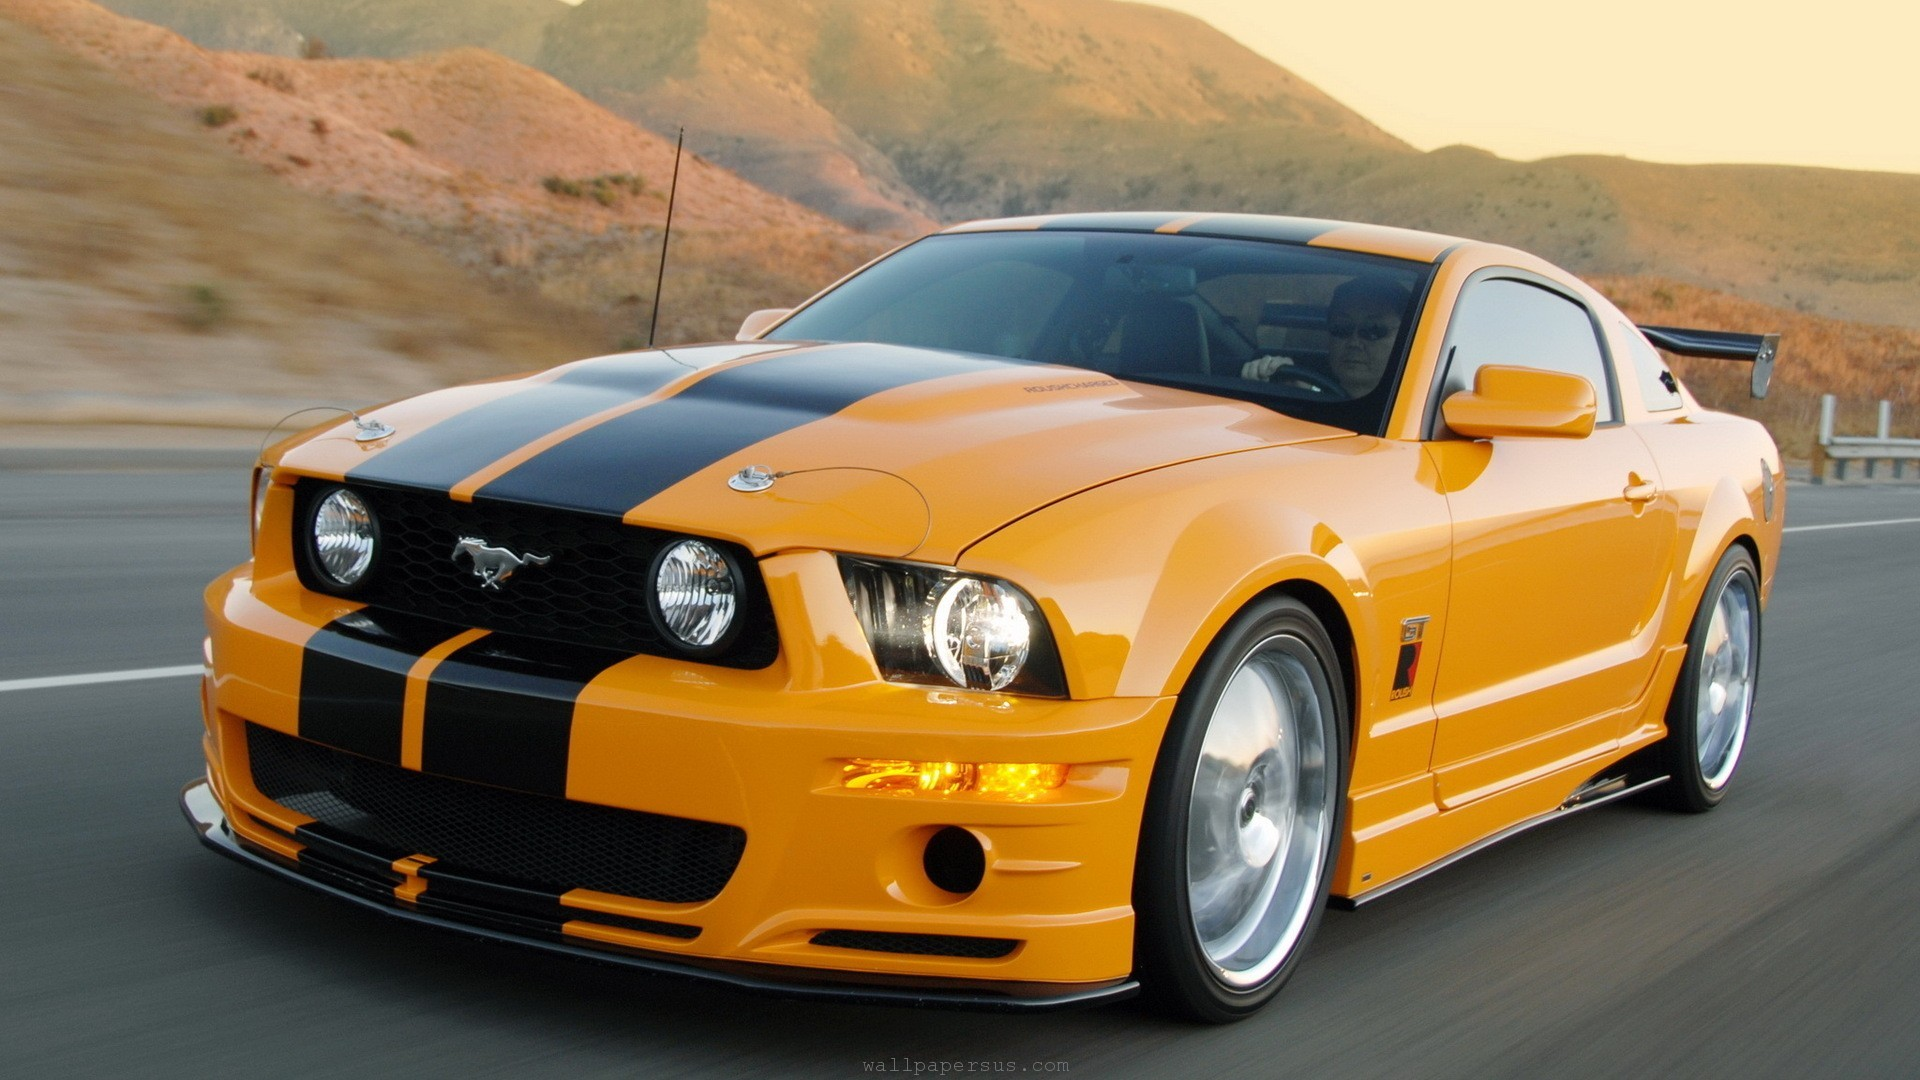 ford mustang tuning car photo wallpaper 1920x1080 16857. Black Bedroom Furniture Sets. Home Design Ideas